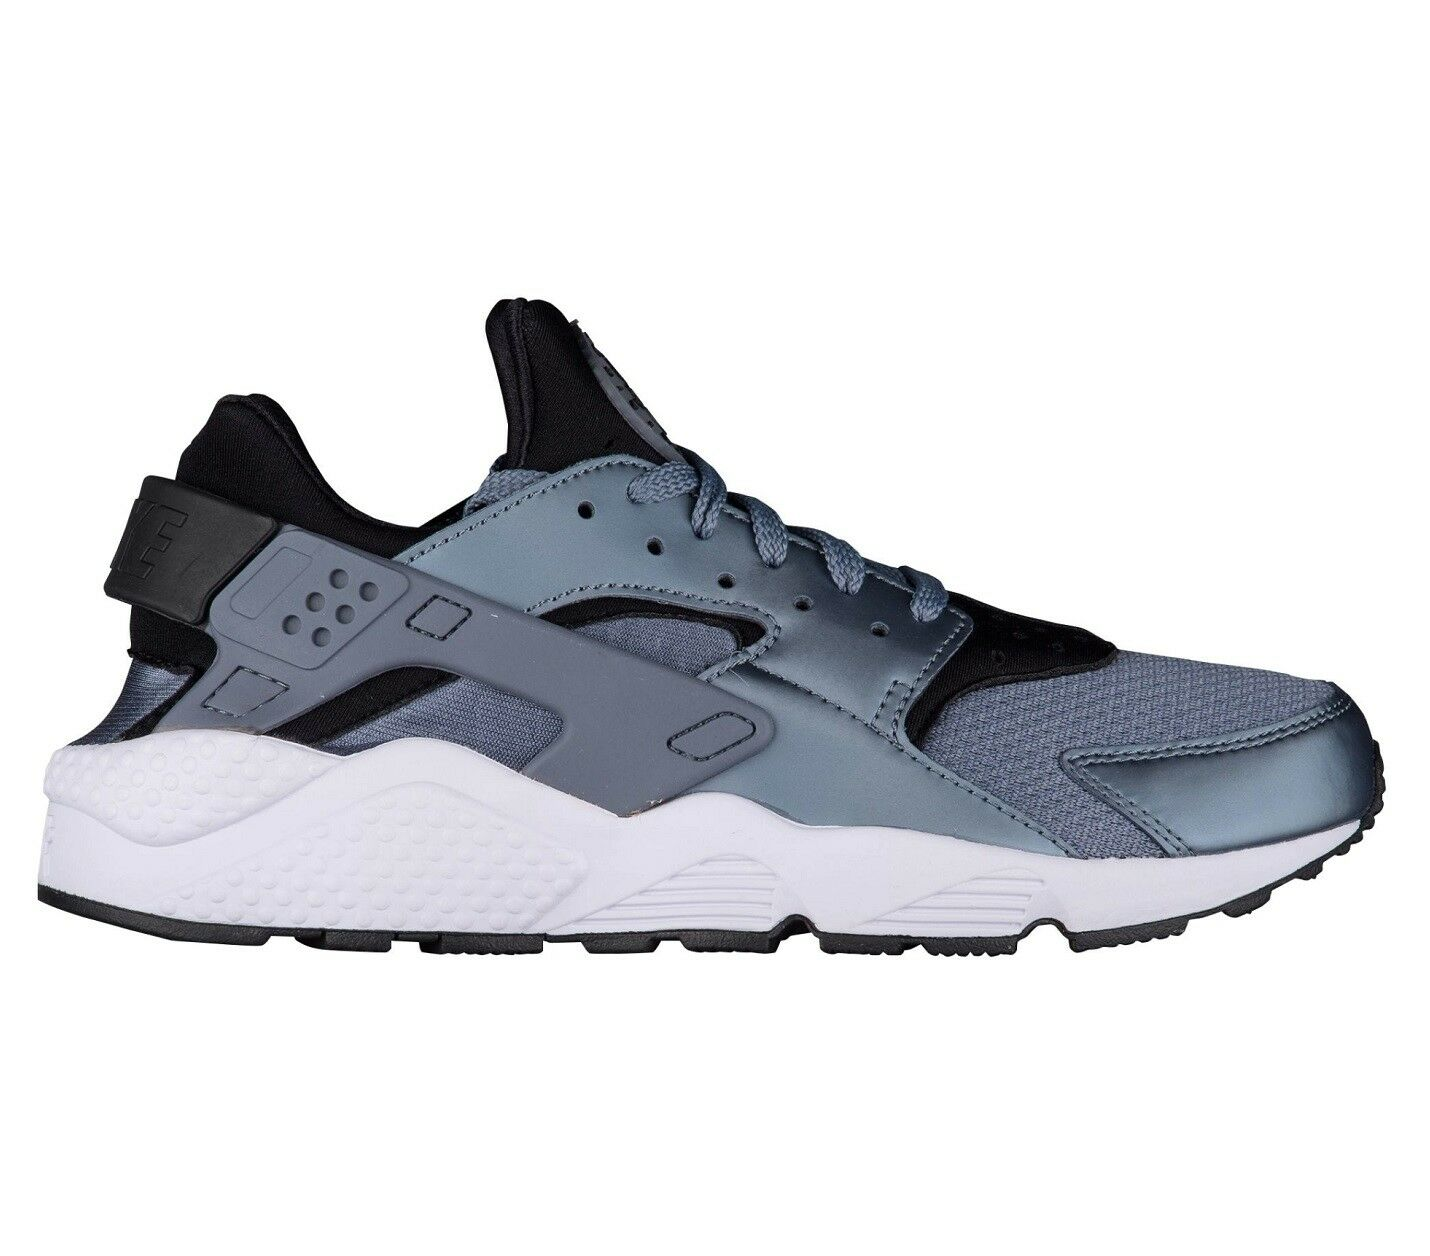 Nike Air Huarache Mens 318429-419 Armory Blue Black Running Shoes Comfortable Comfortable and good-looking